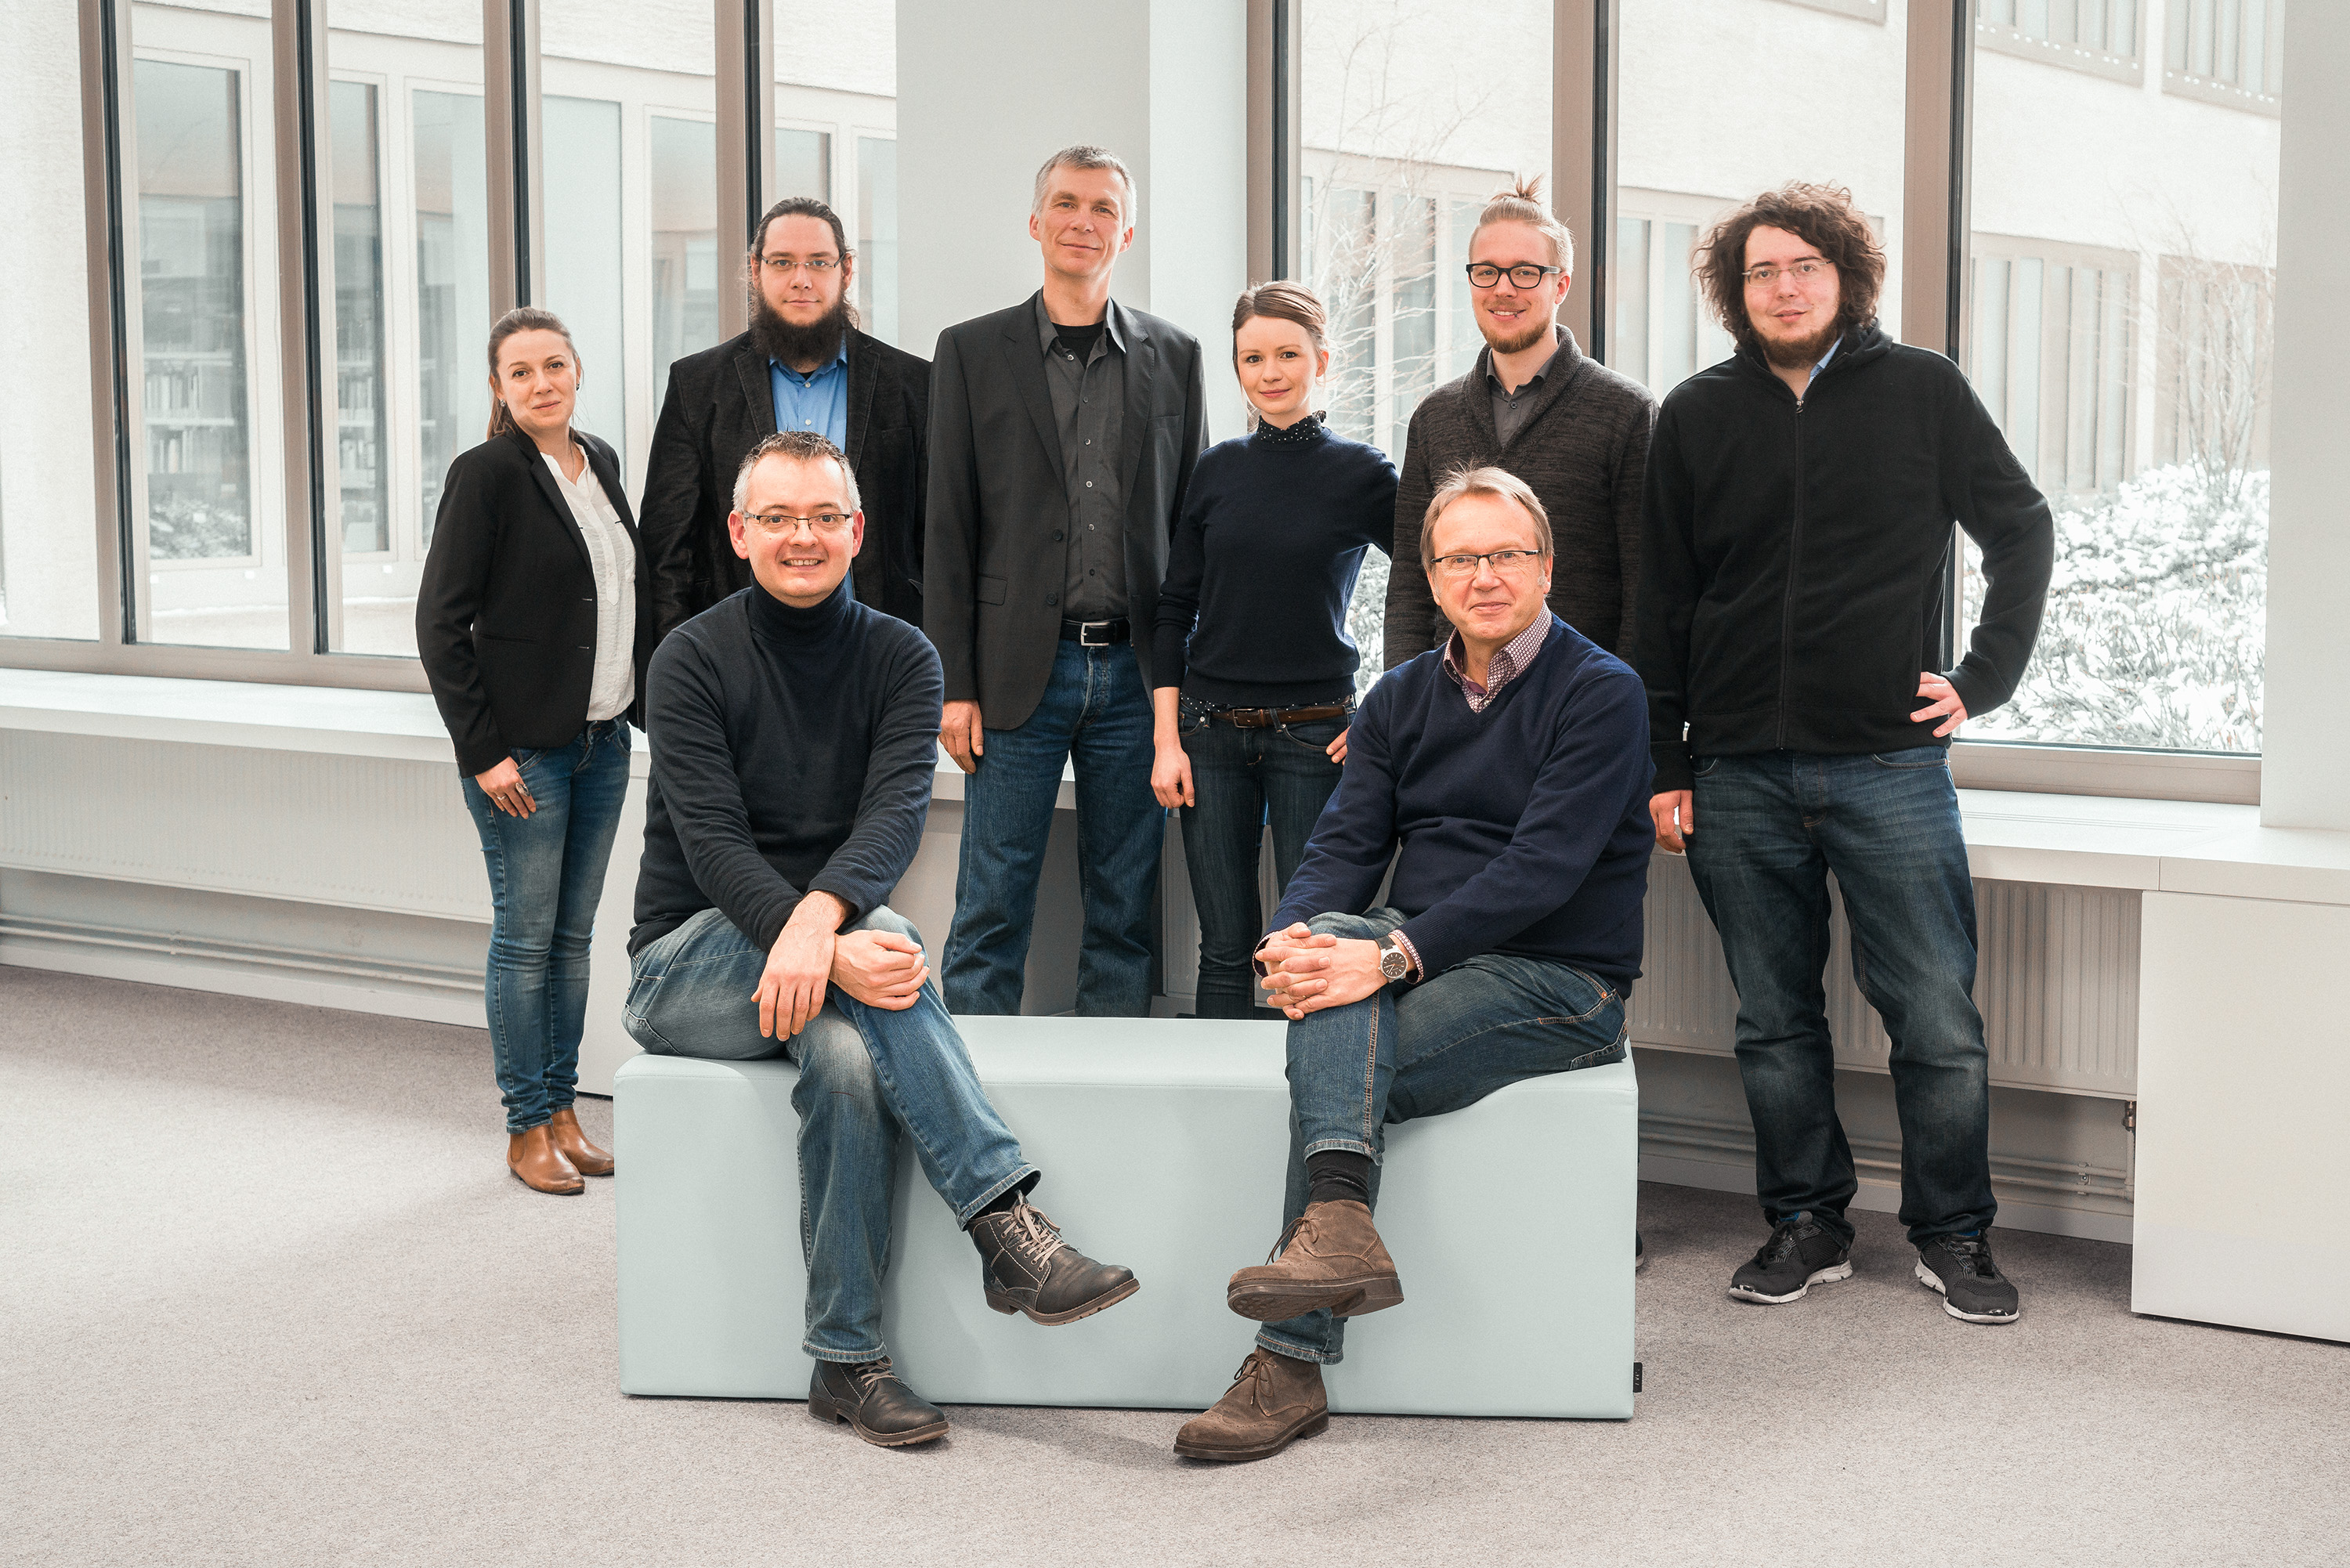 Osnabrück Universities' team members of Philosophy of Mind and Cogntion